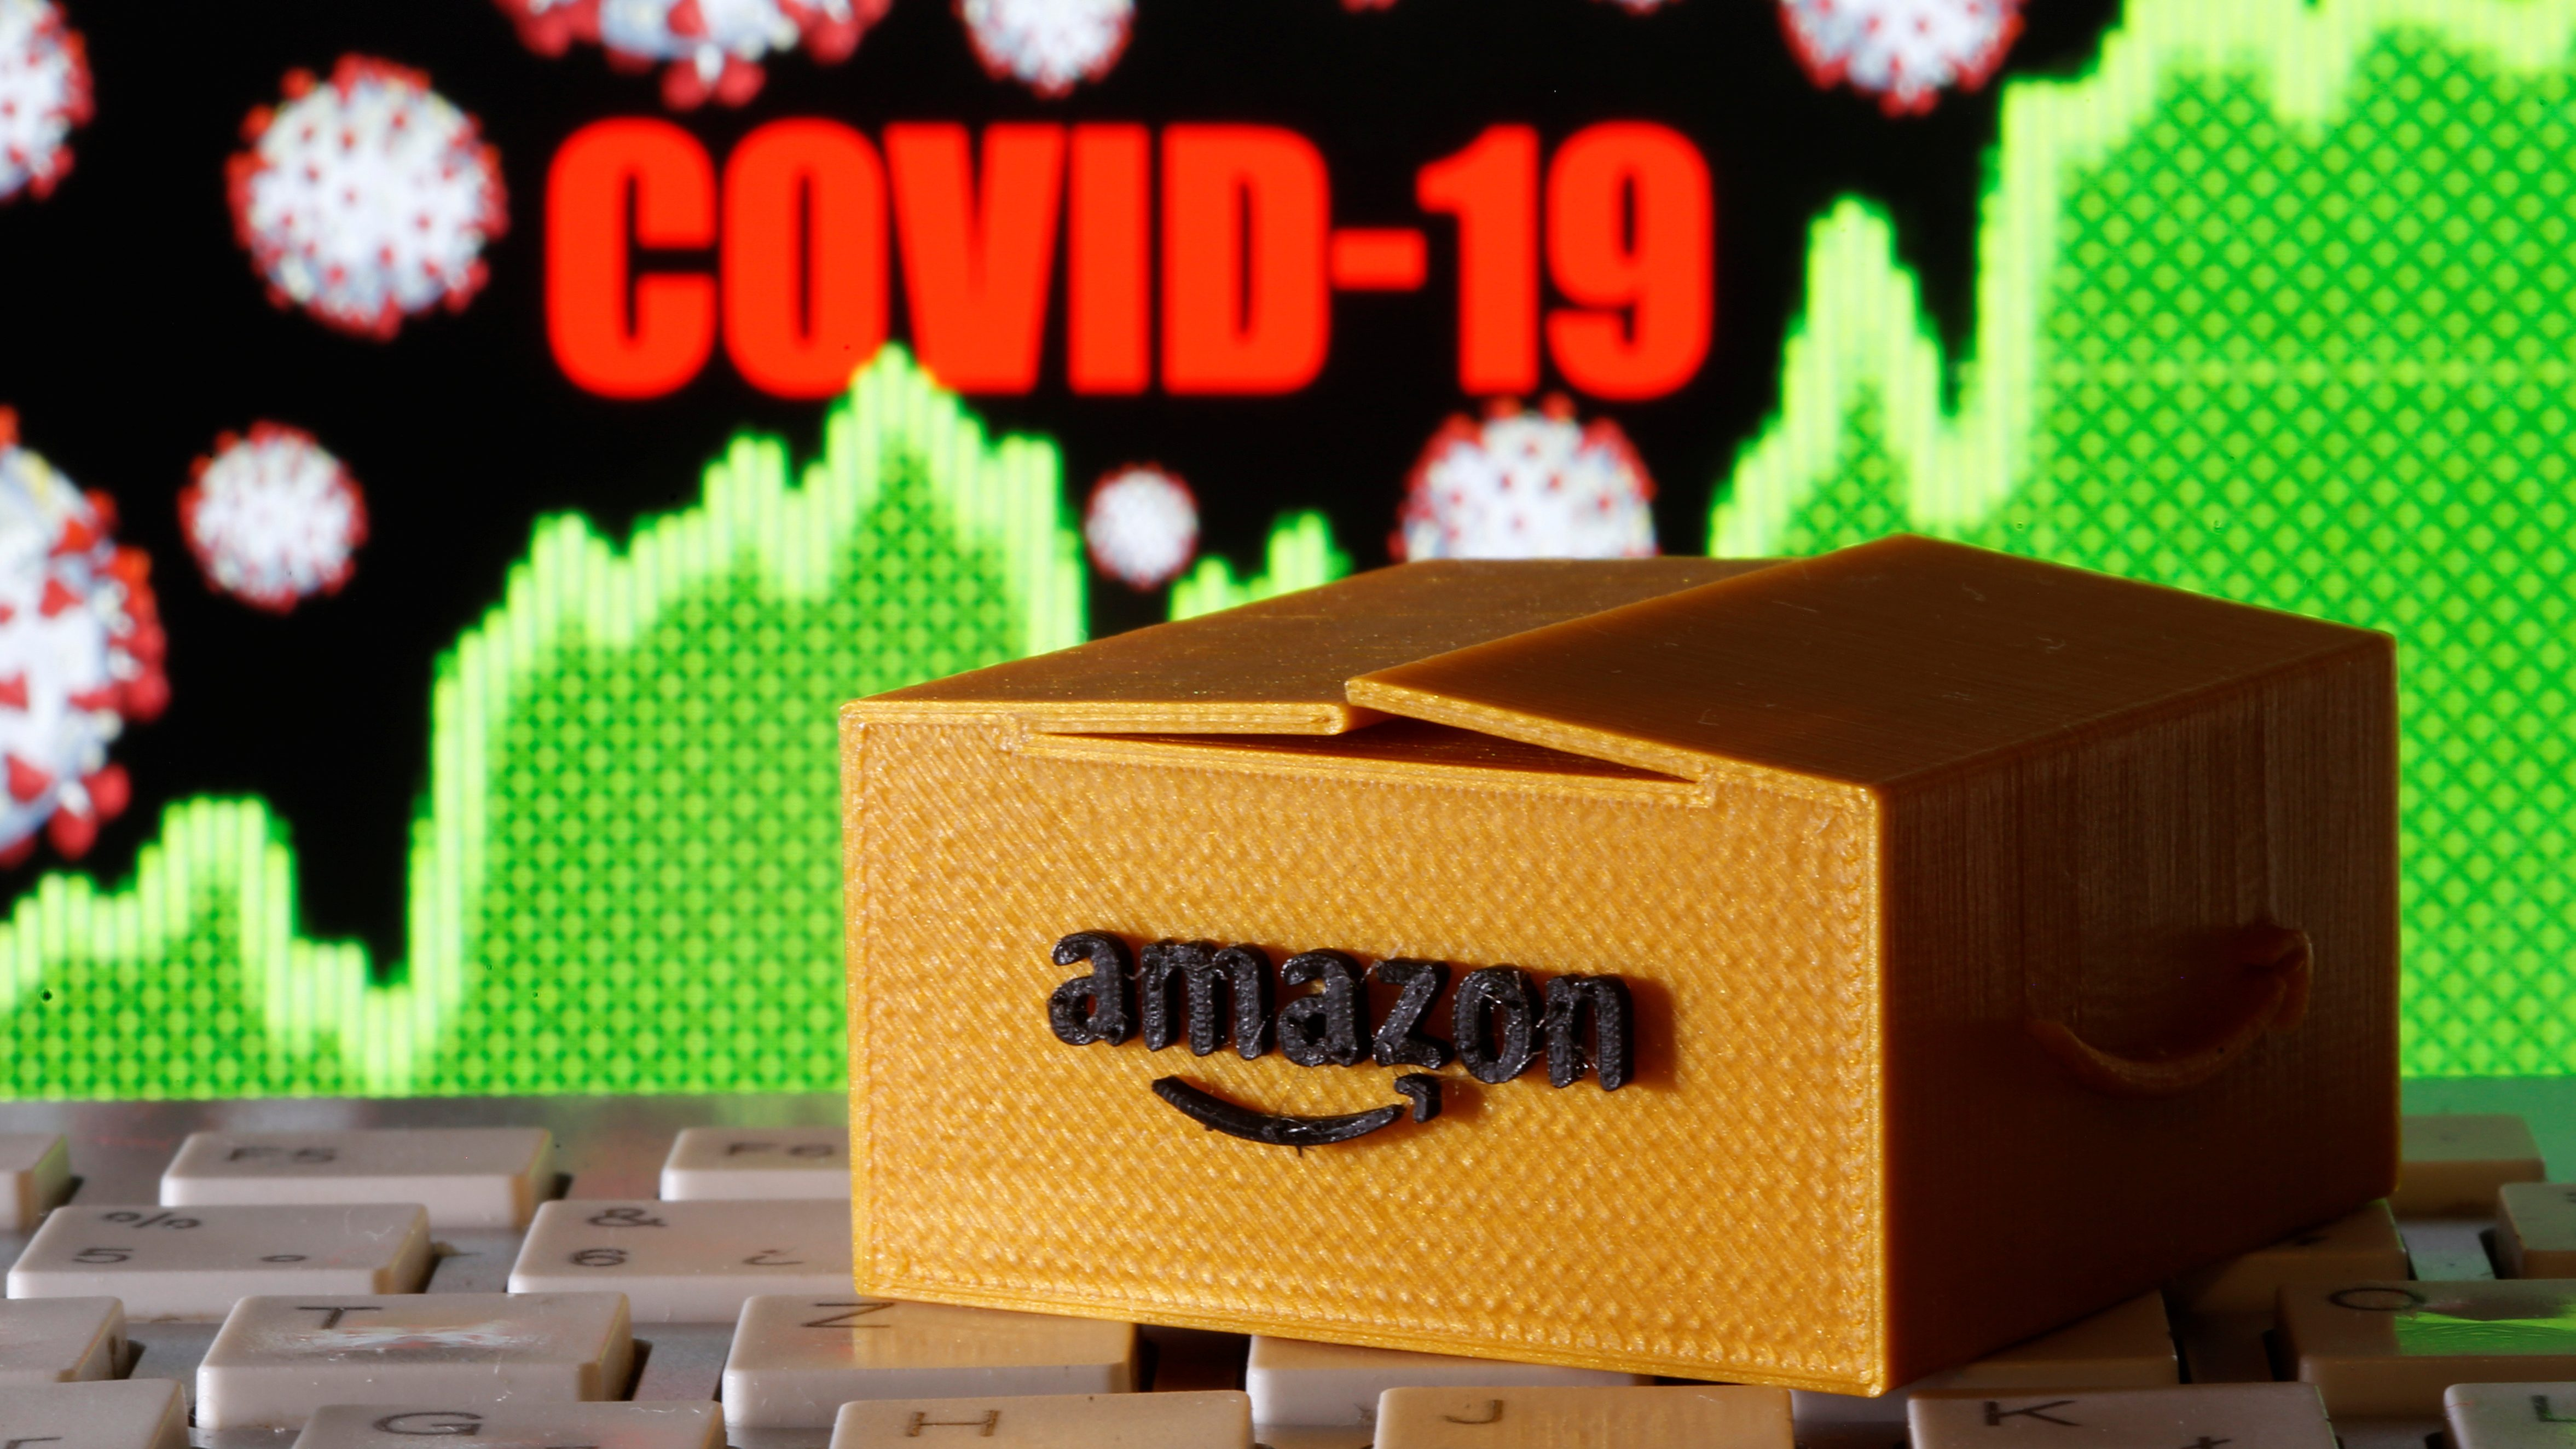 An Amazon box on top of a keyboard with a Covid-19 chart in the background.